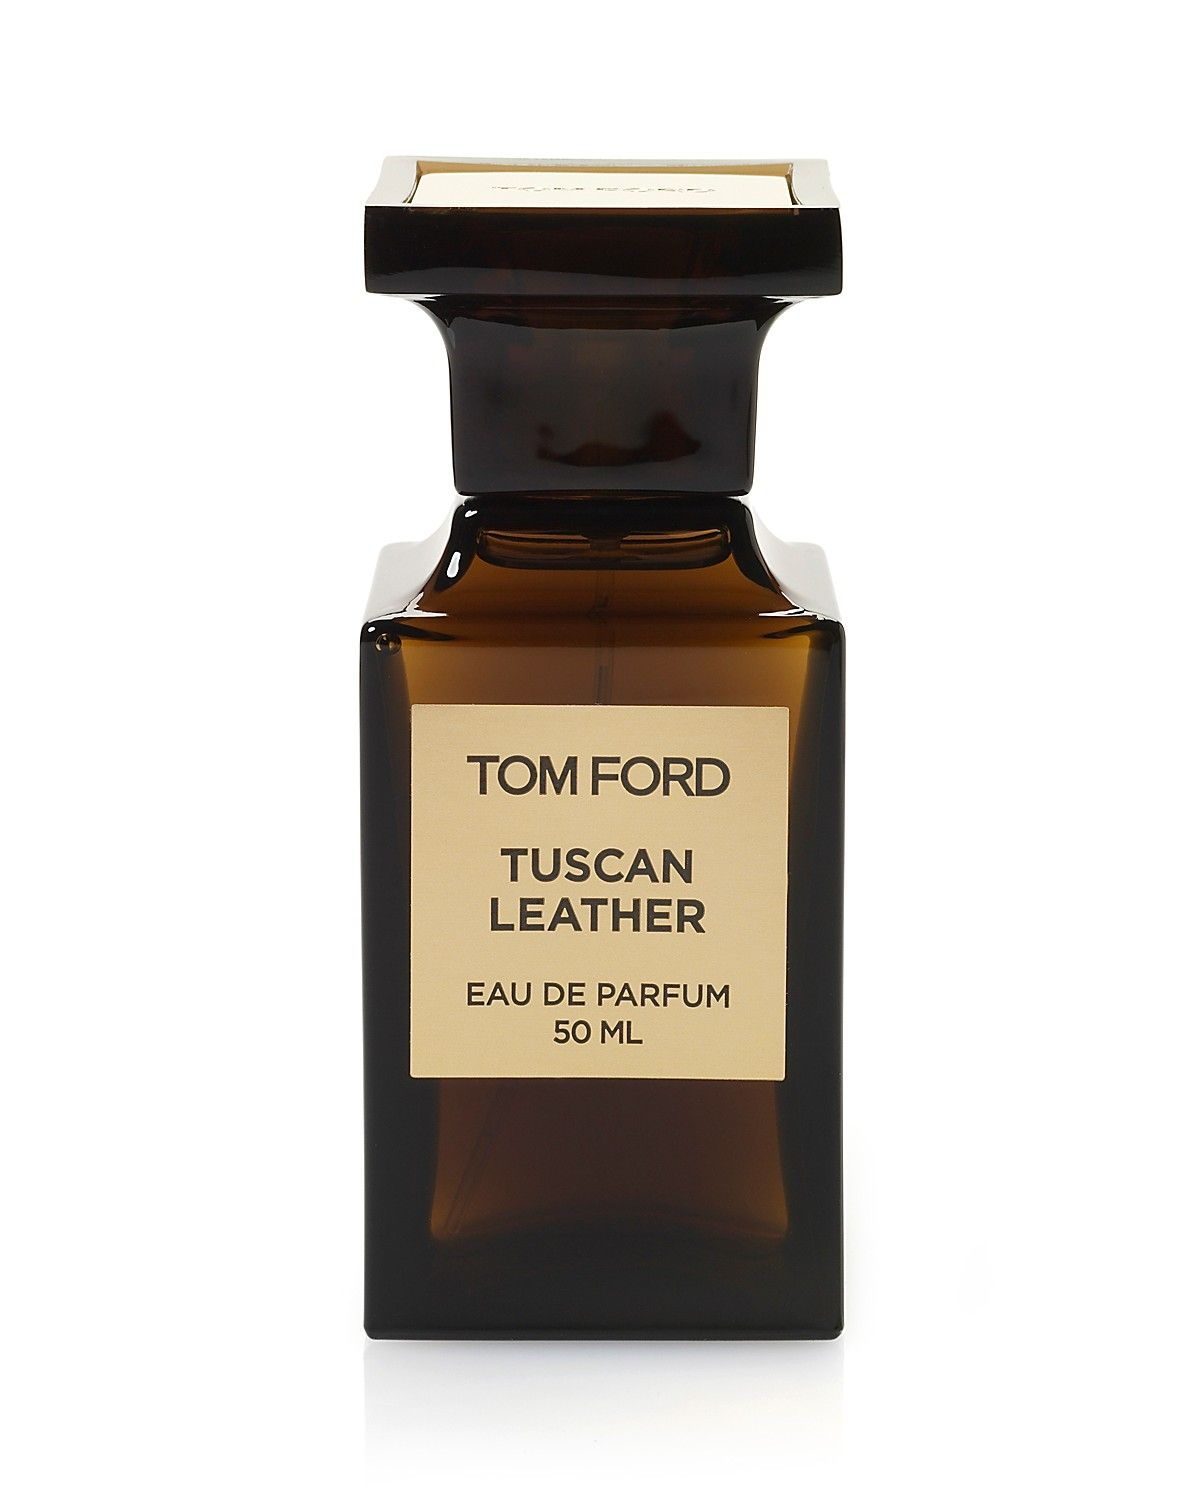 9756f895f7d6 Tom Ford Tuscan Leather...layer this with the Tom Ford Tobacco Vanille..you ll  never be the same.